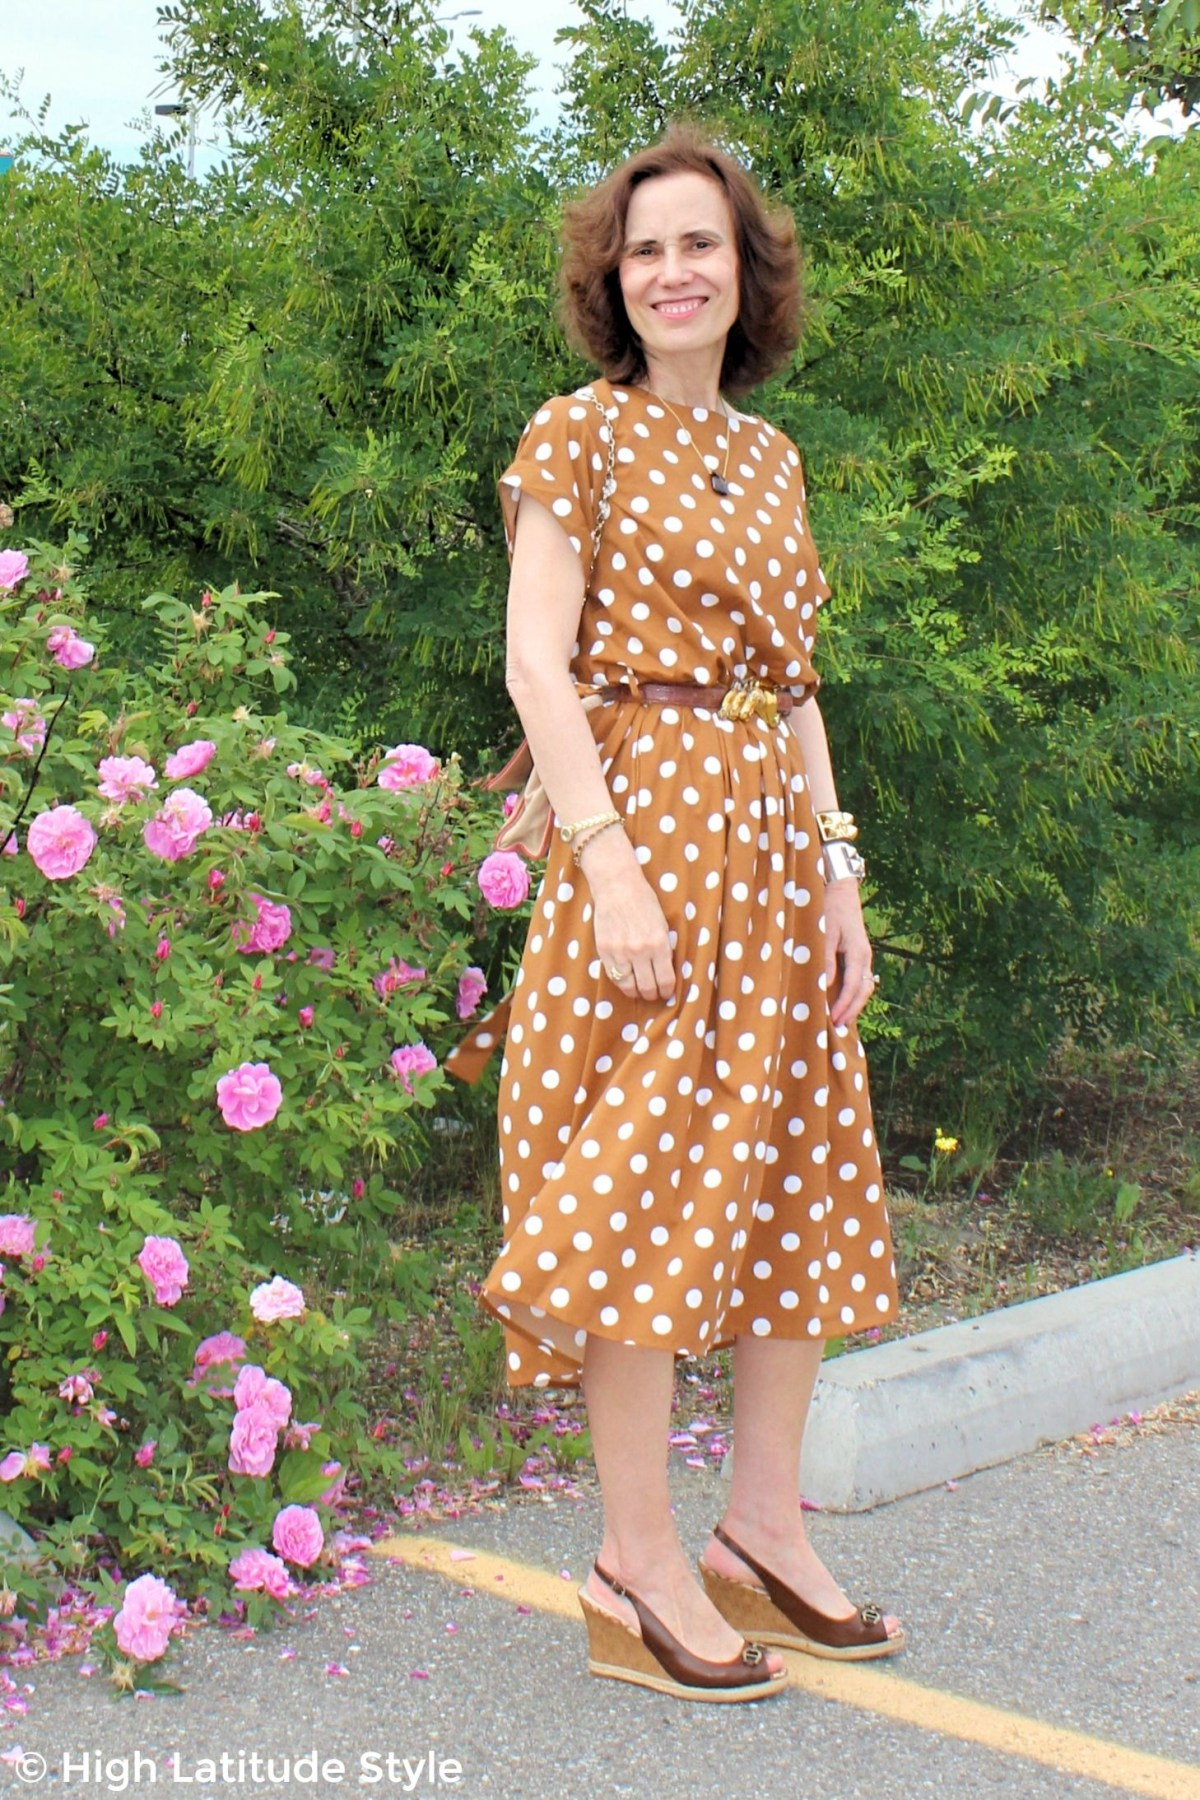 style blogger in summer outfit with polka dots in front of Sitka roses